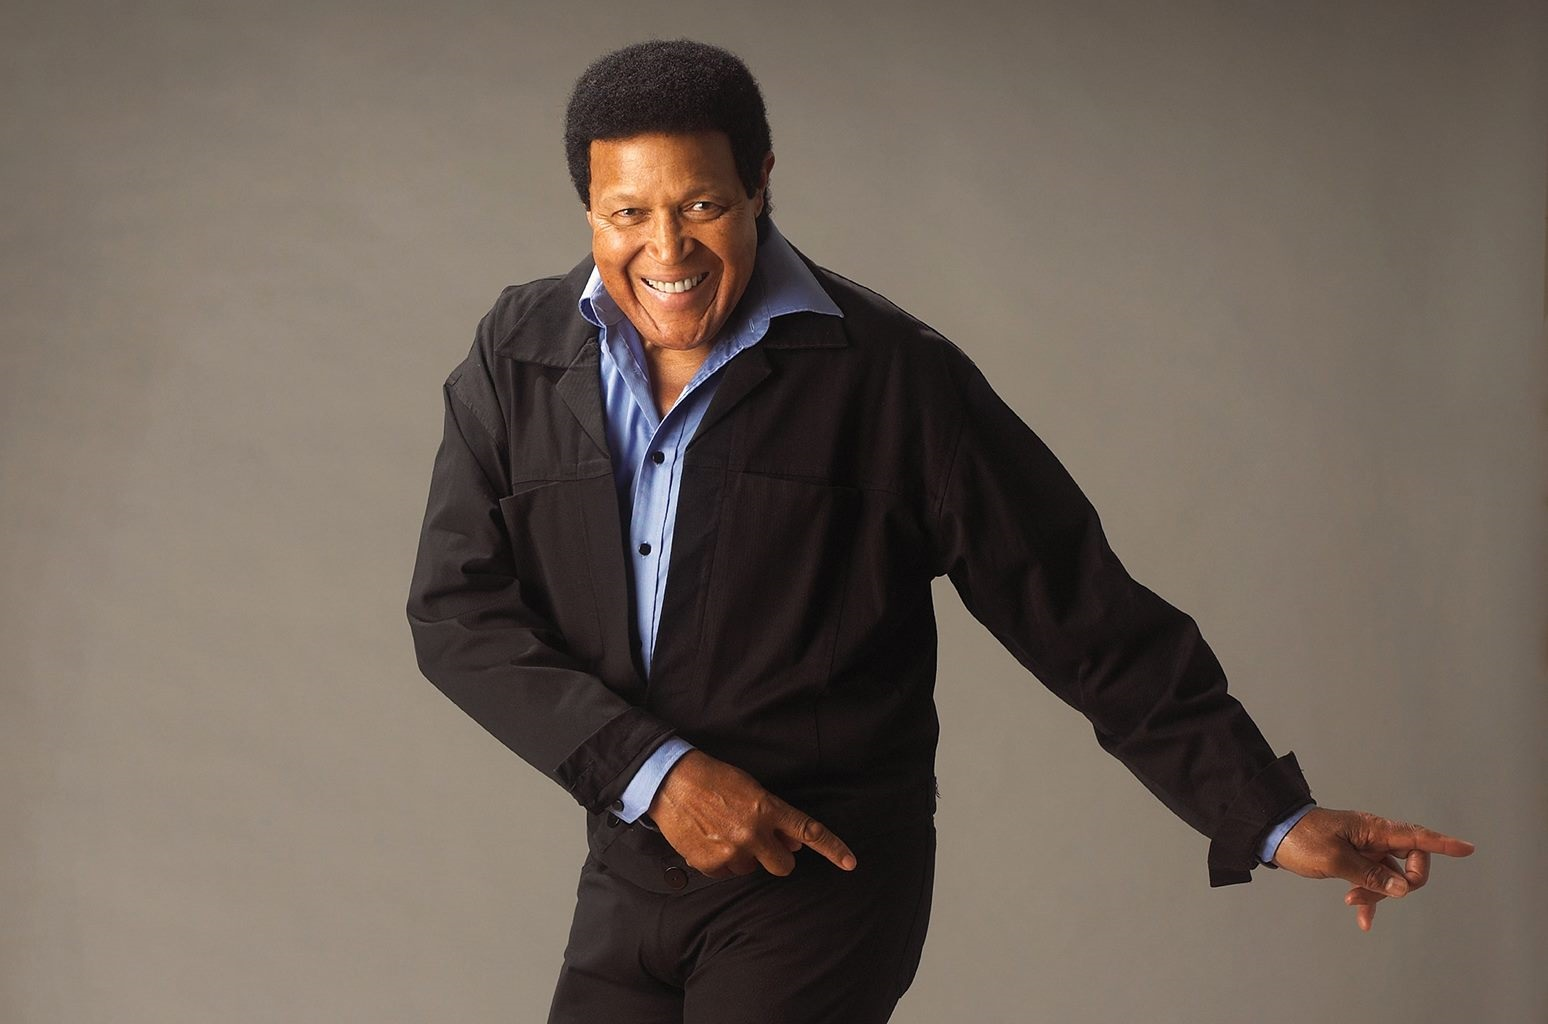 chubby-checker-passingtures-fat